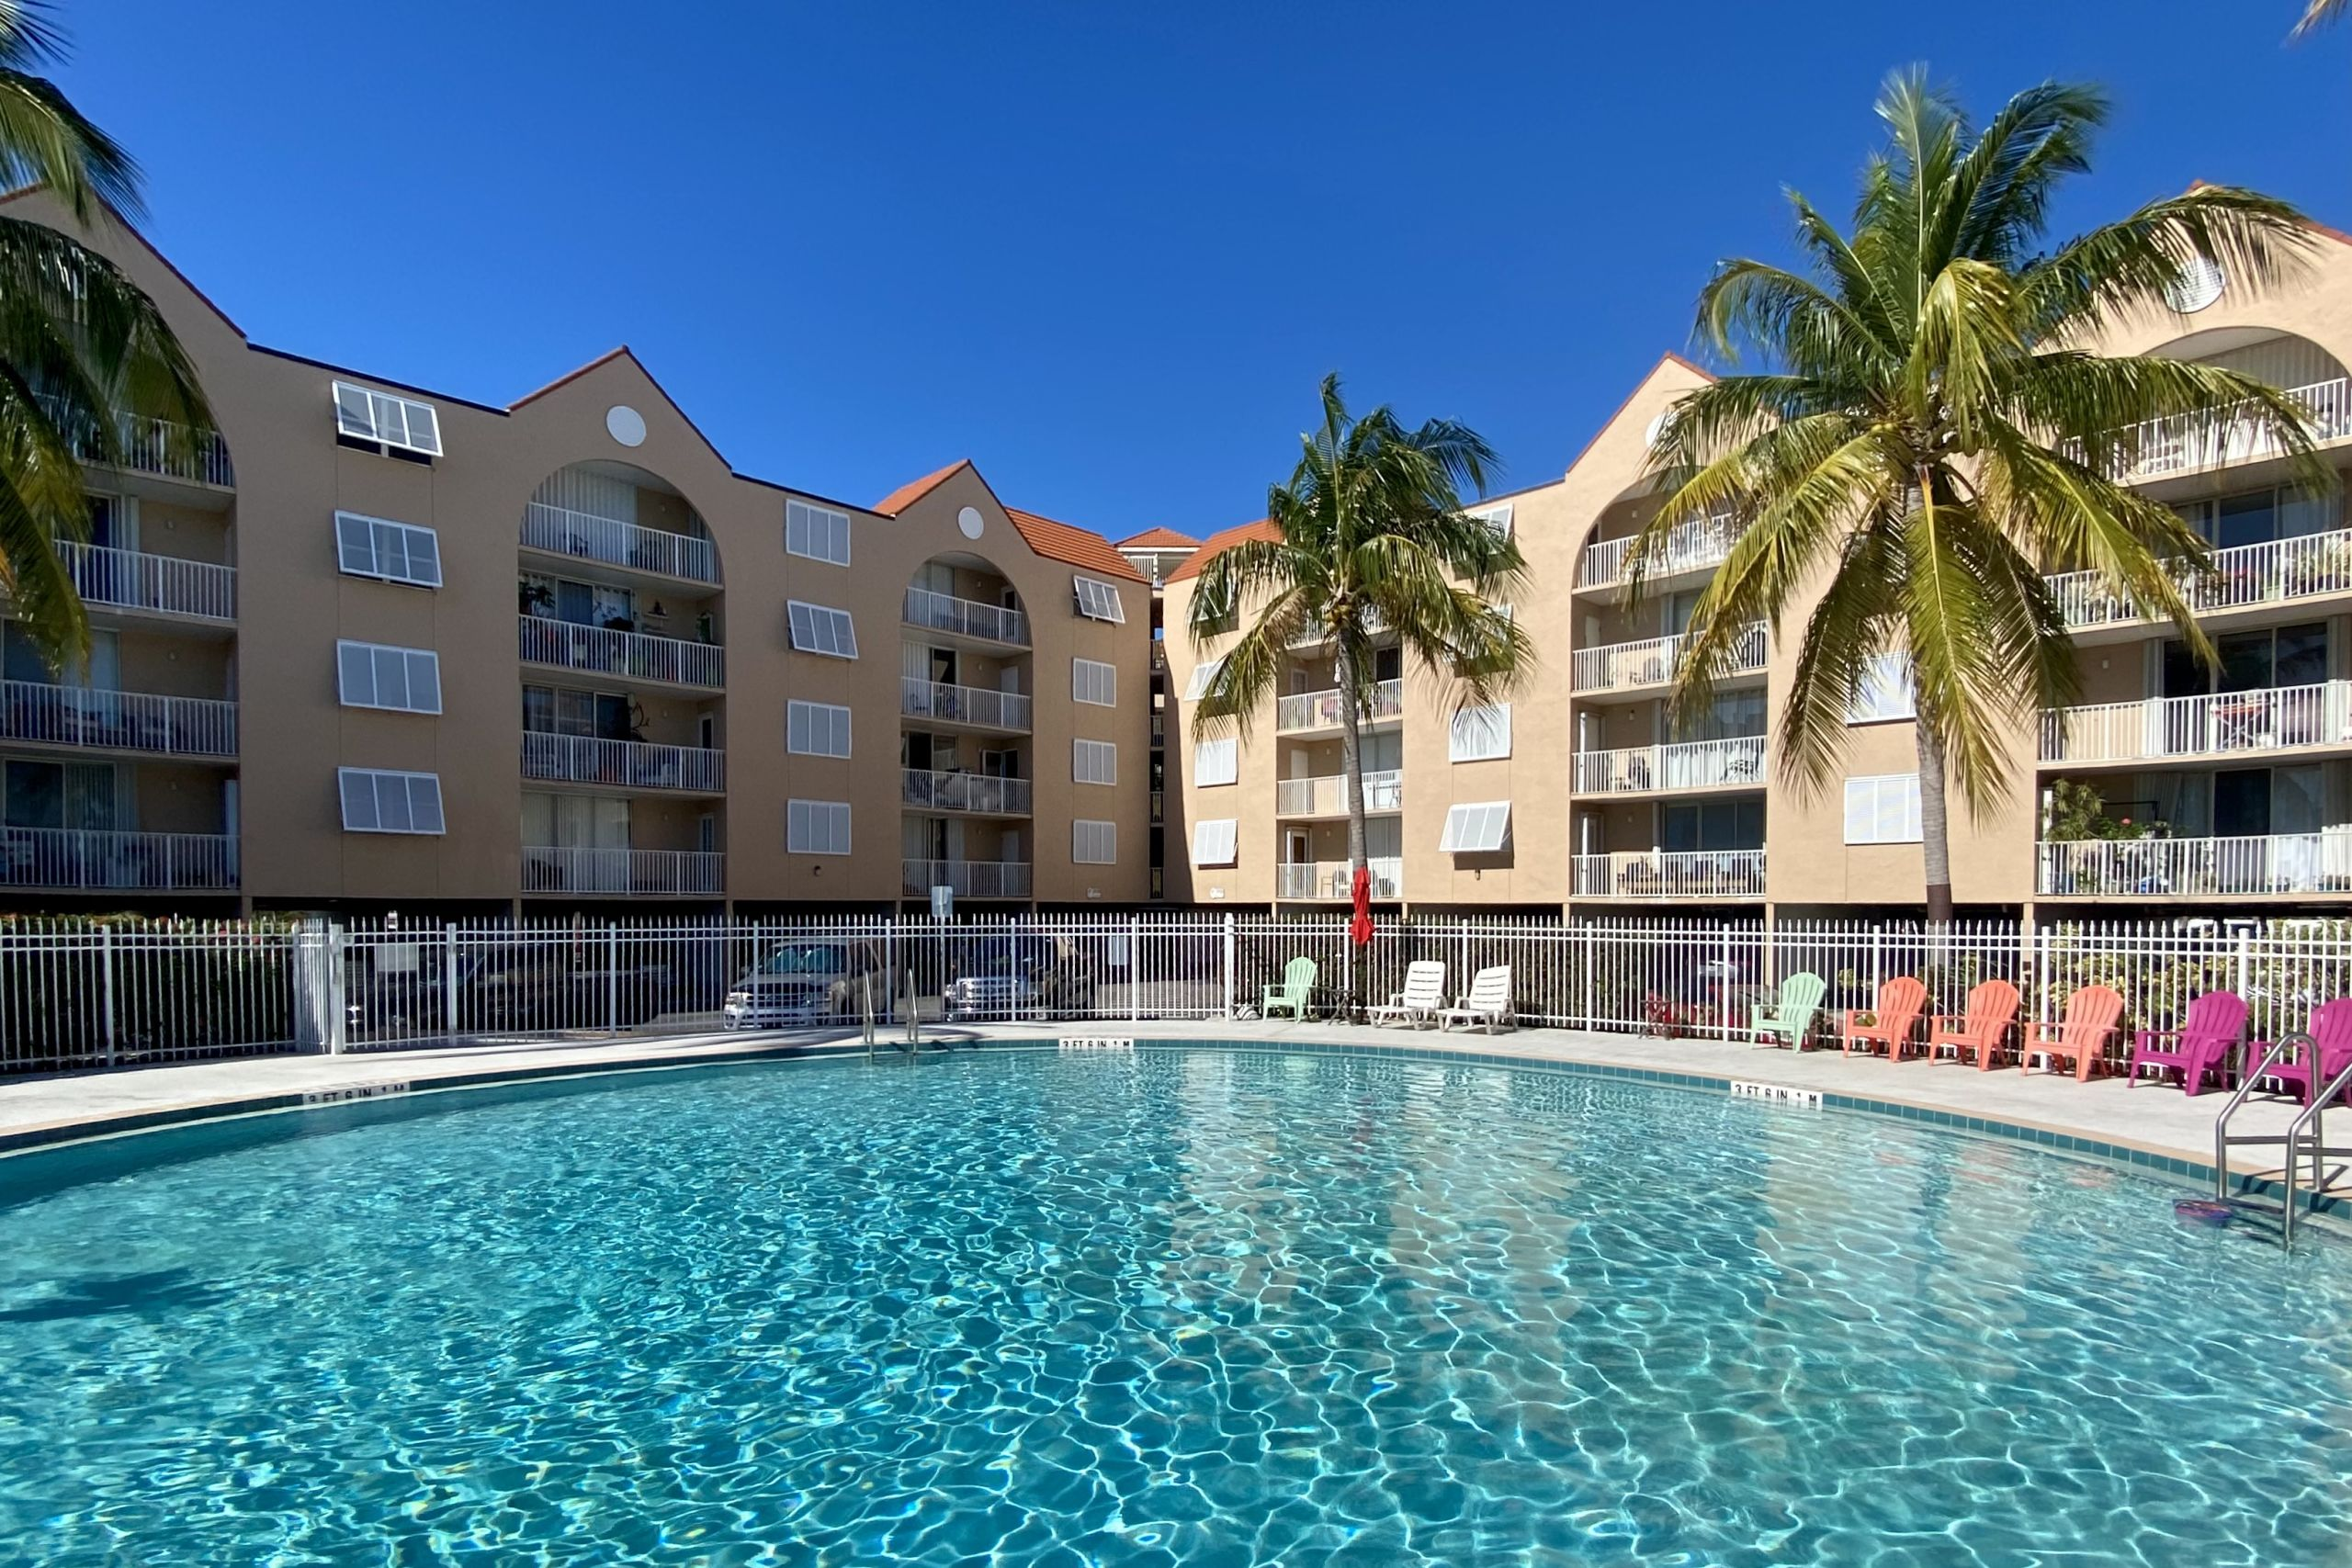 Best Priced 3 BR Property in Key West